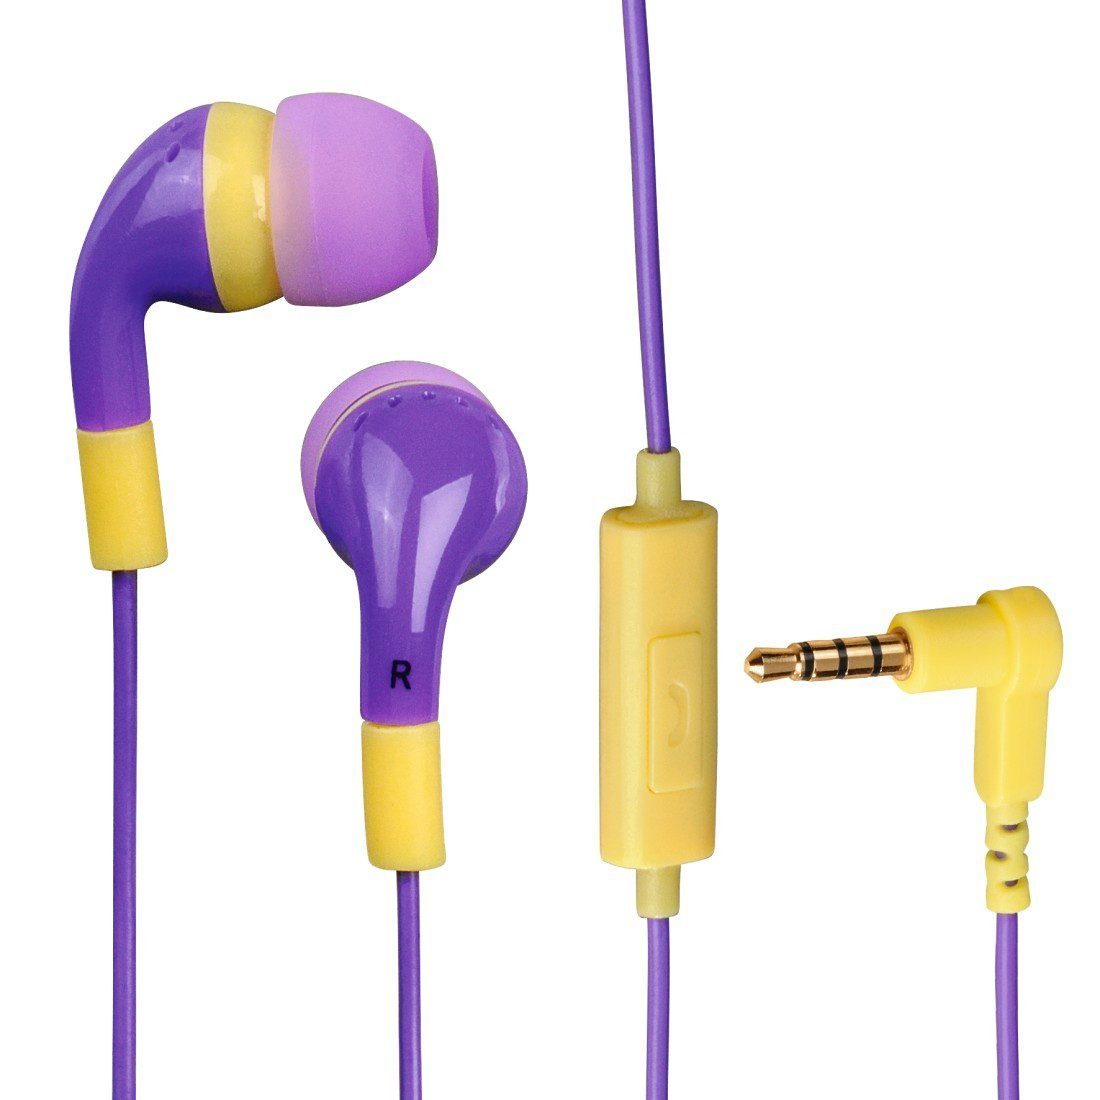 Hama In-Ear-Stereo-Ohrhörer Flip Flop, Orchid/Sand